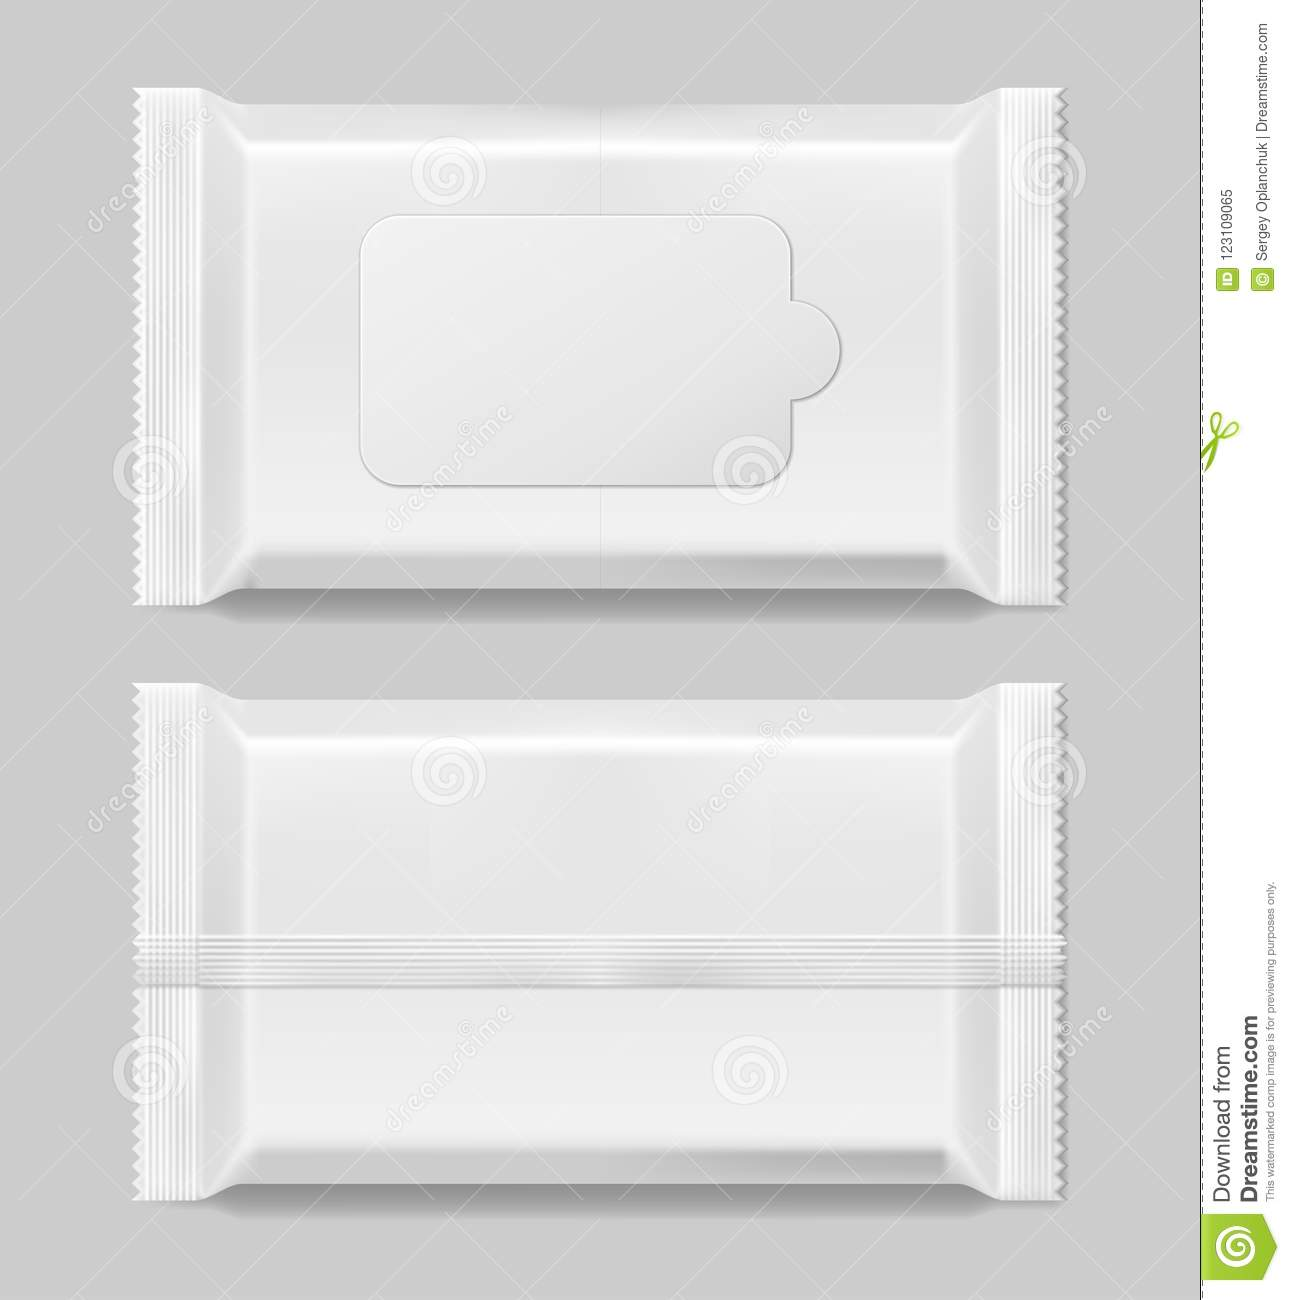 Wet wipes napkins template front and vack view isolated white wet wet wipes napkins template front and vack view isolated white wet wipes blank package maxwellsz